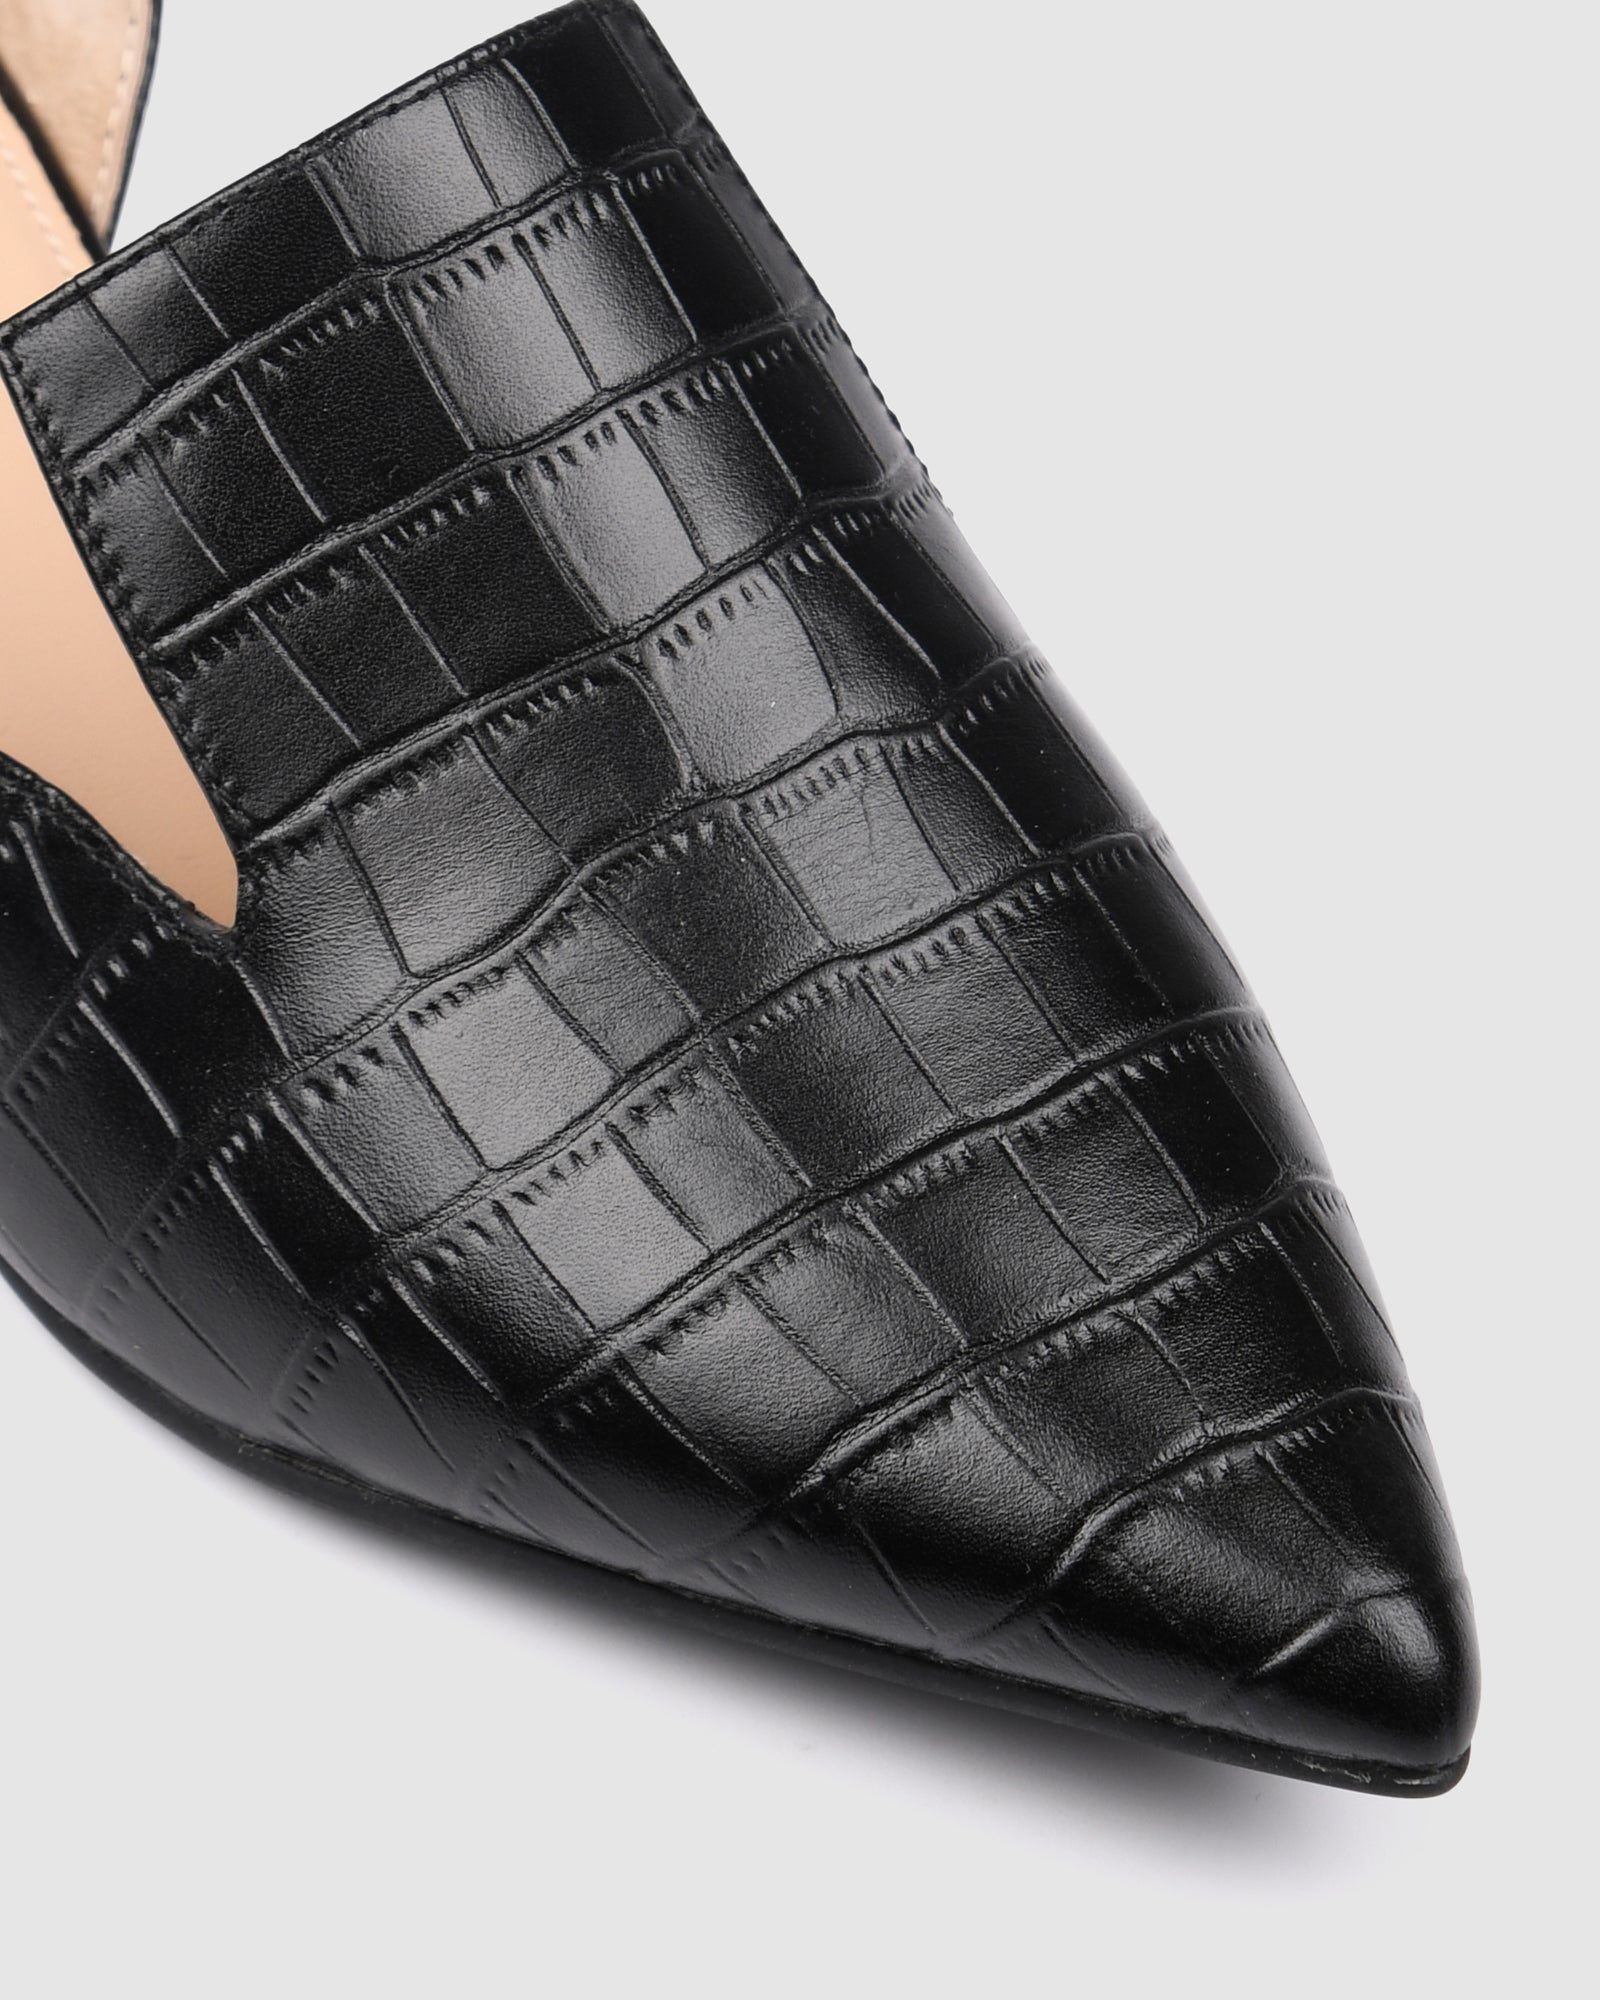 CAMI DRESS FLATS BLACK CROC